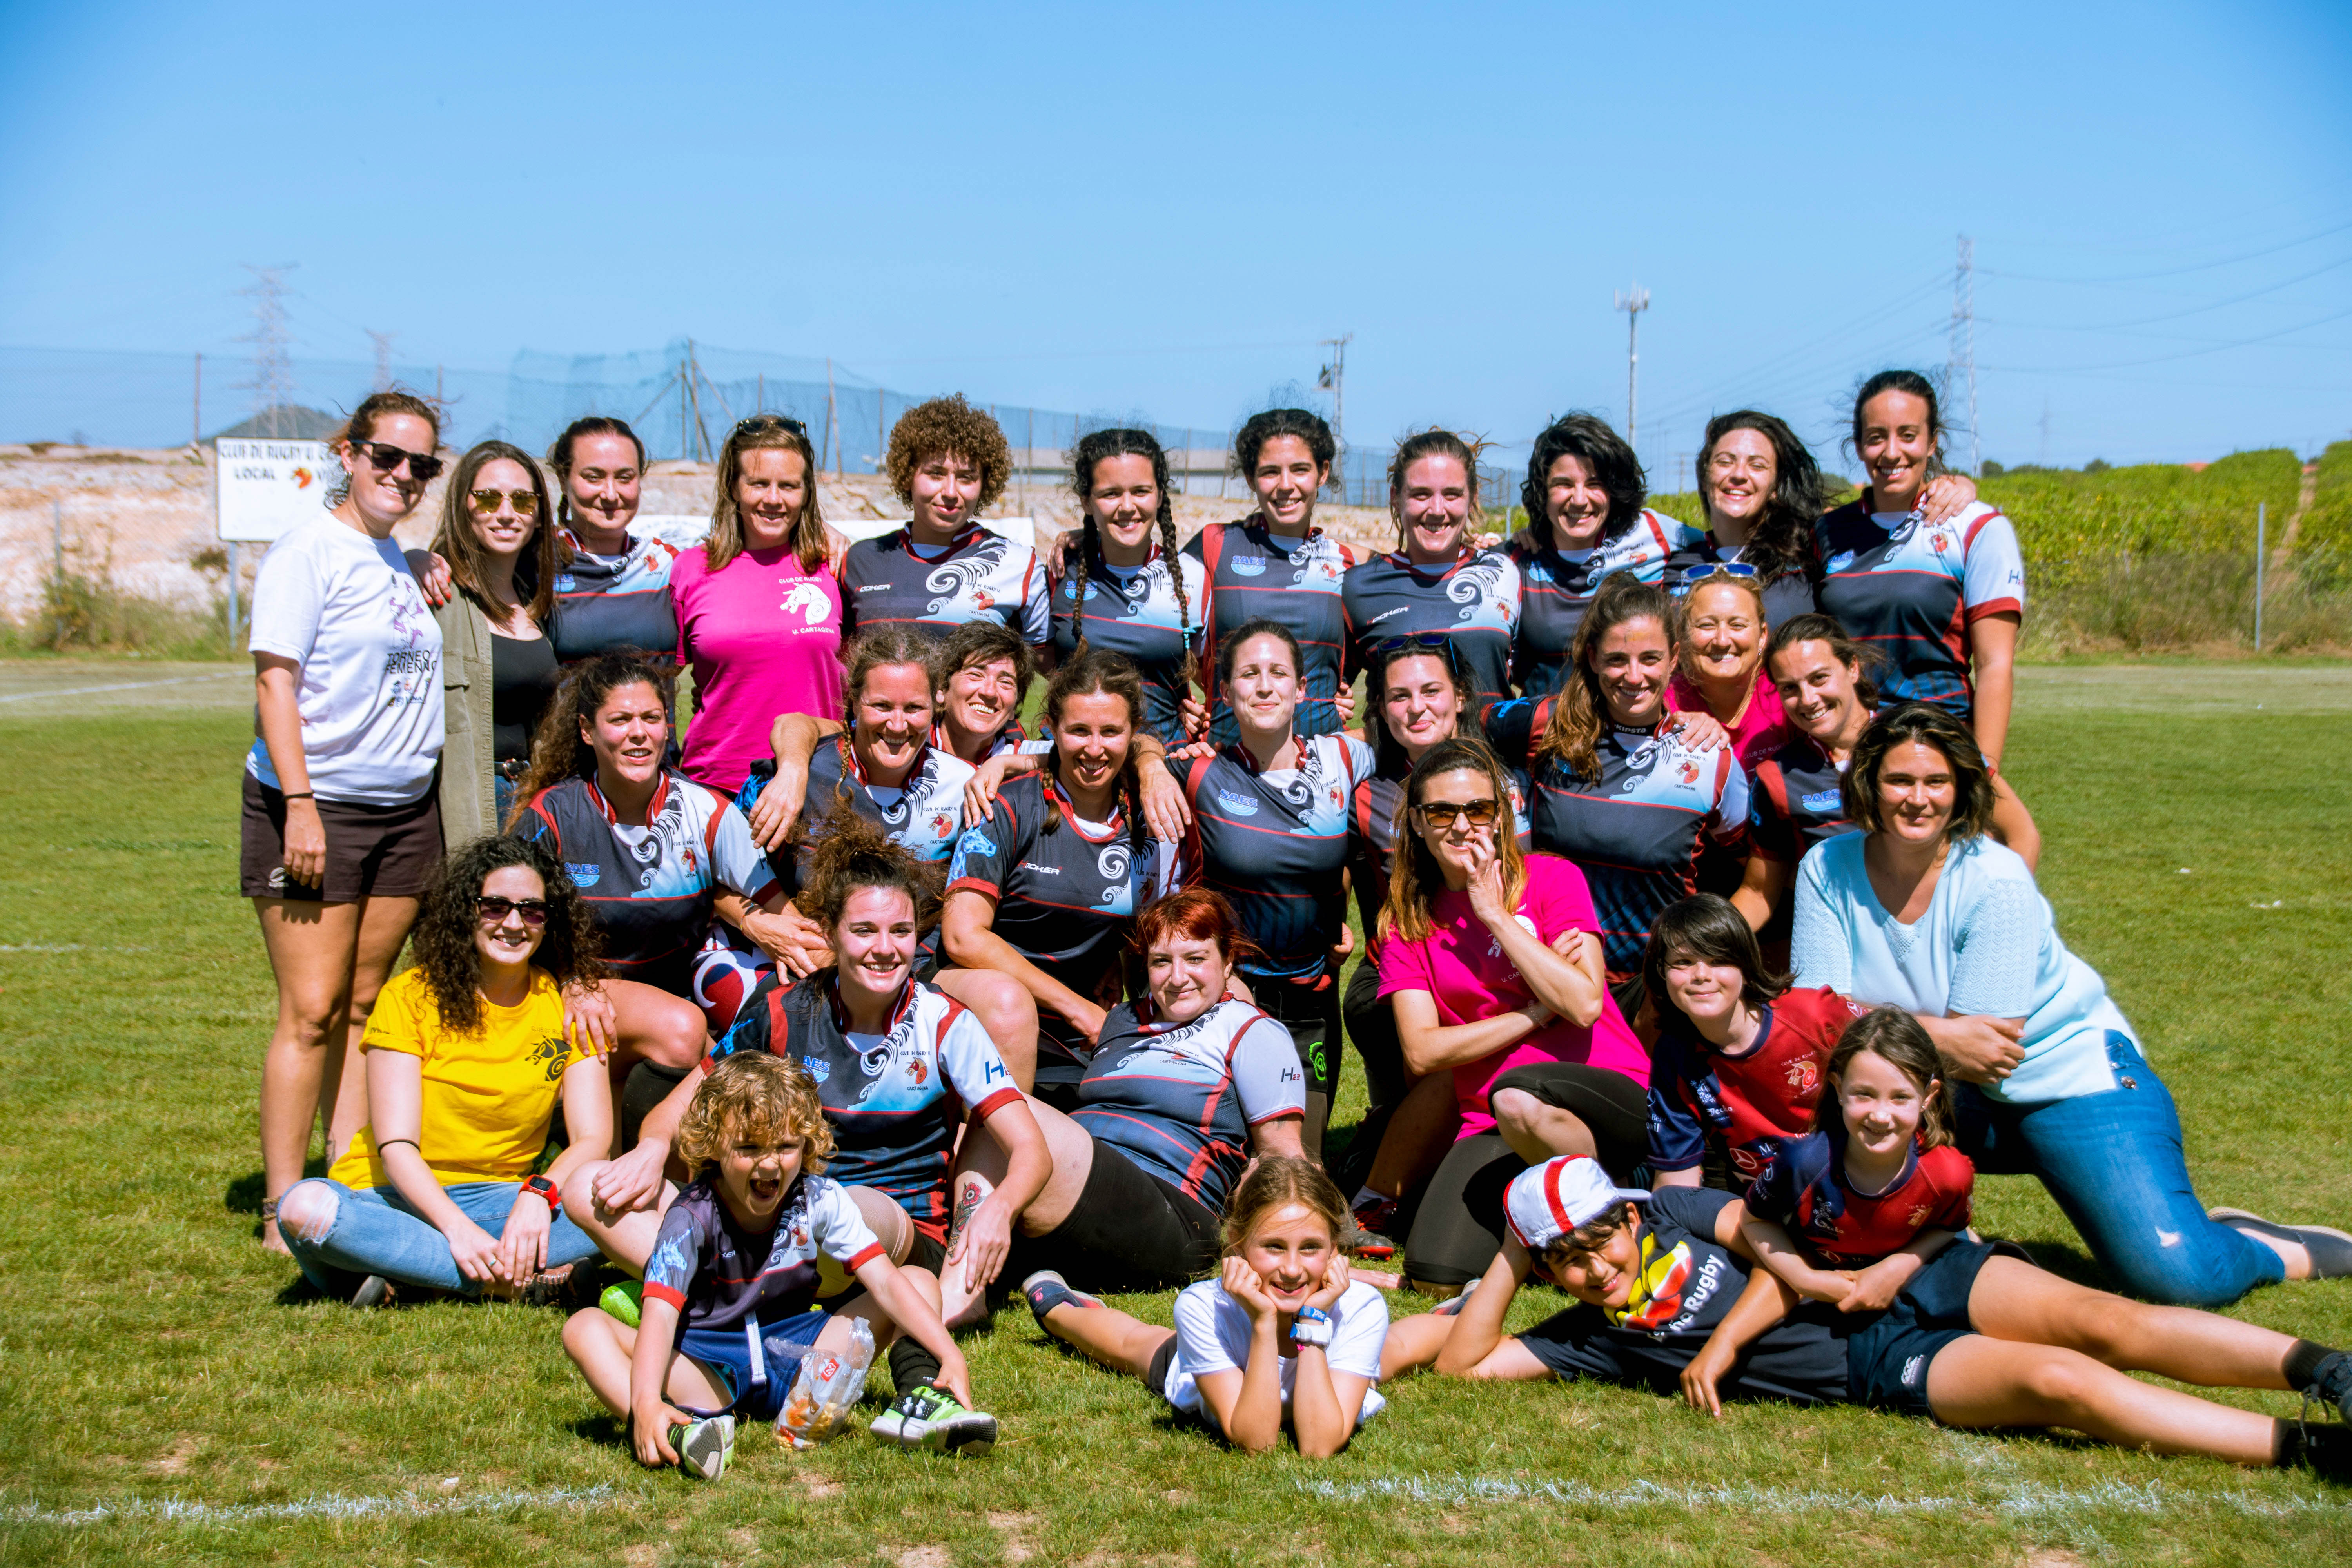 Torneo Rugby 10 2019